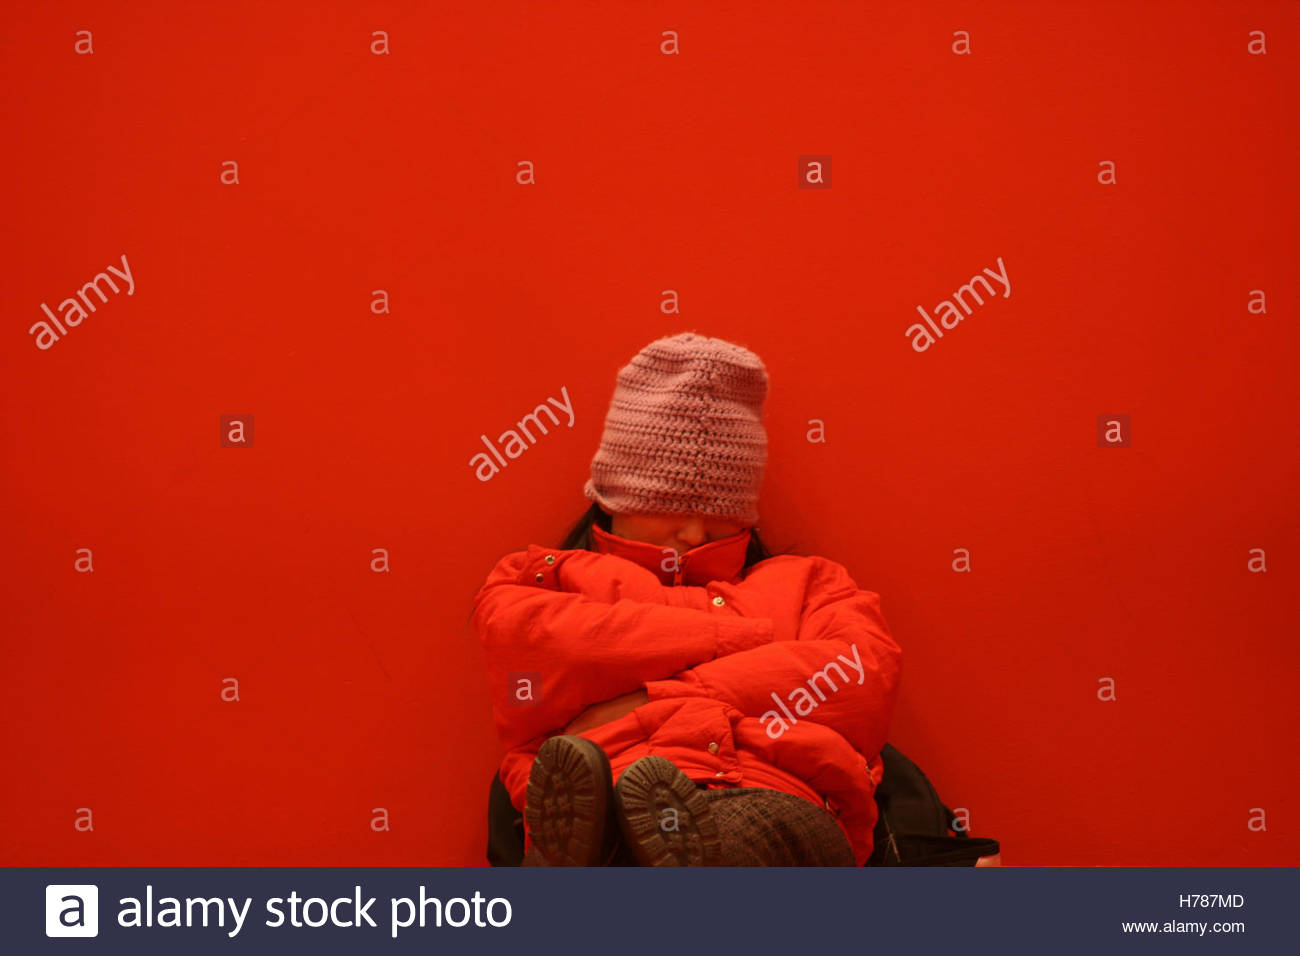 Asian woman in a red jacket naps in a red room - Stock Image